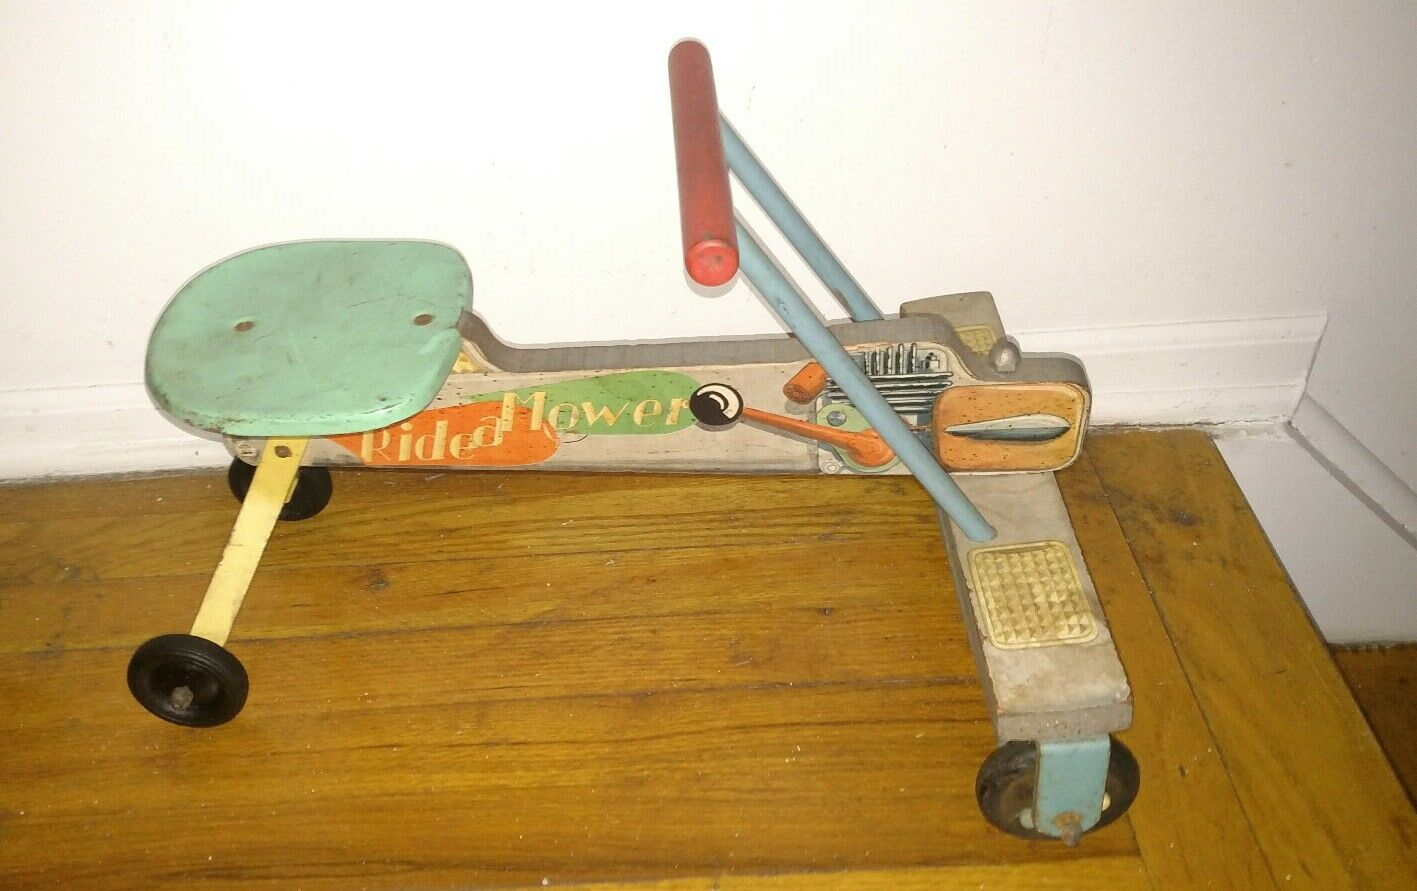 Rare Vintage N.N.Hill brass co Ride a mower pull toy airplane wood metal toy